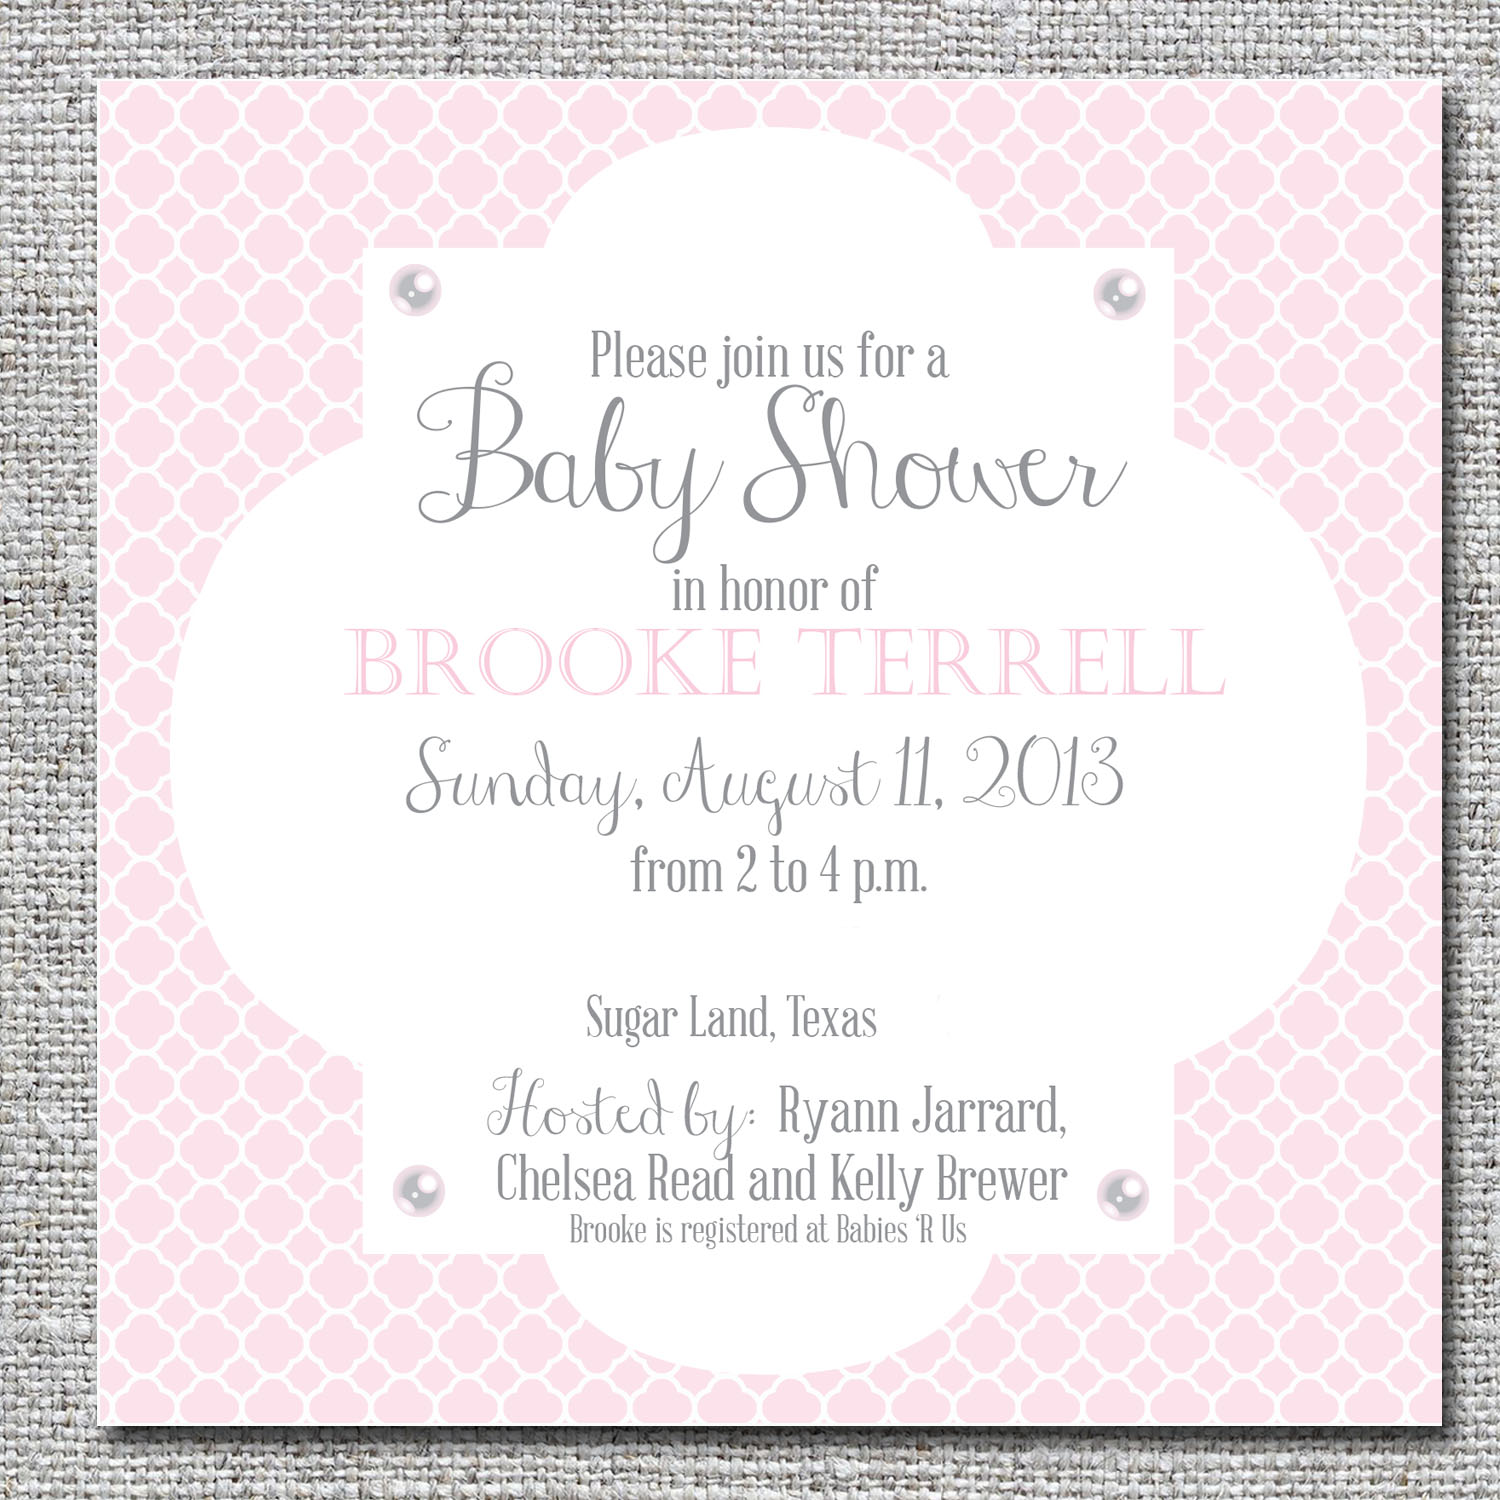 Pink and pearl quatrefoil baby shower invitation nine0nine pink and pearl quatrefoil baby shower invitation filmwisefo